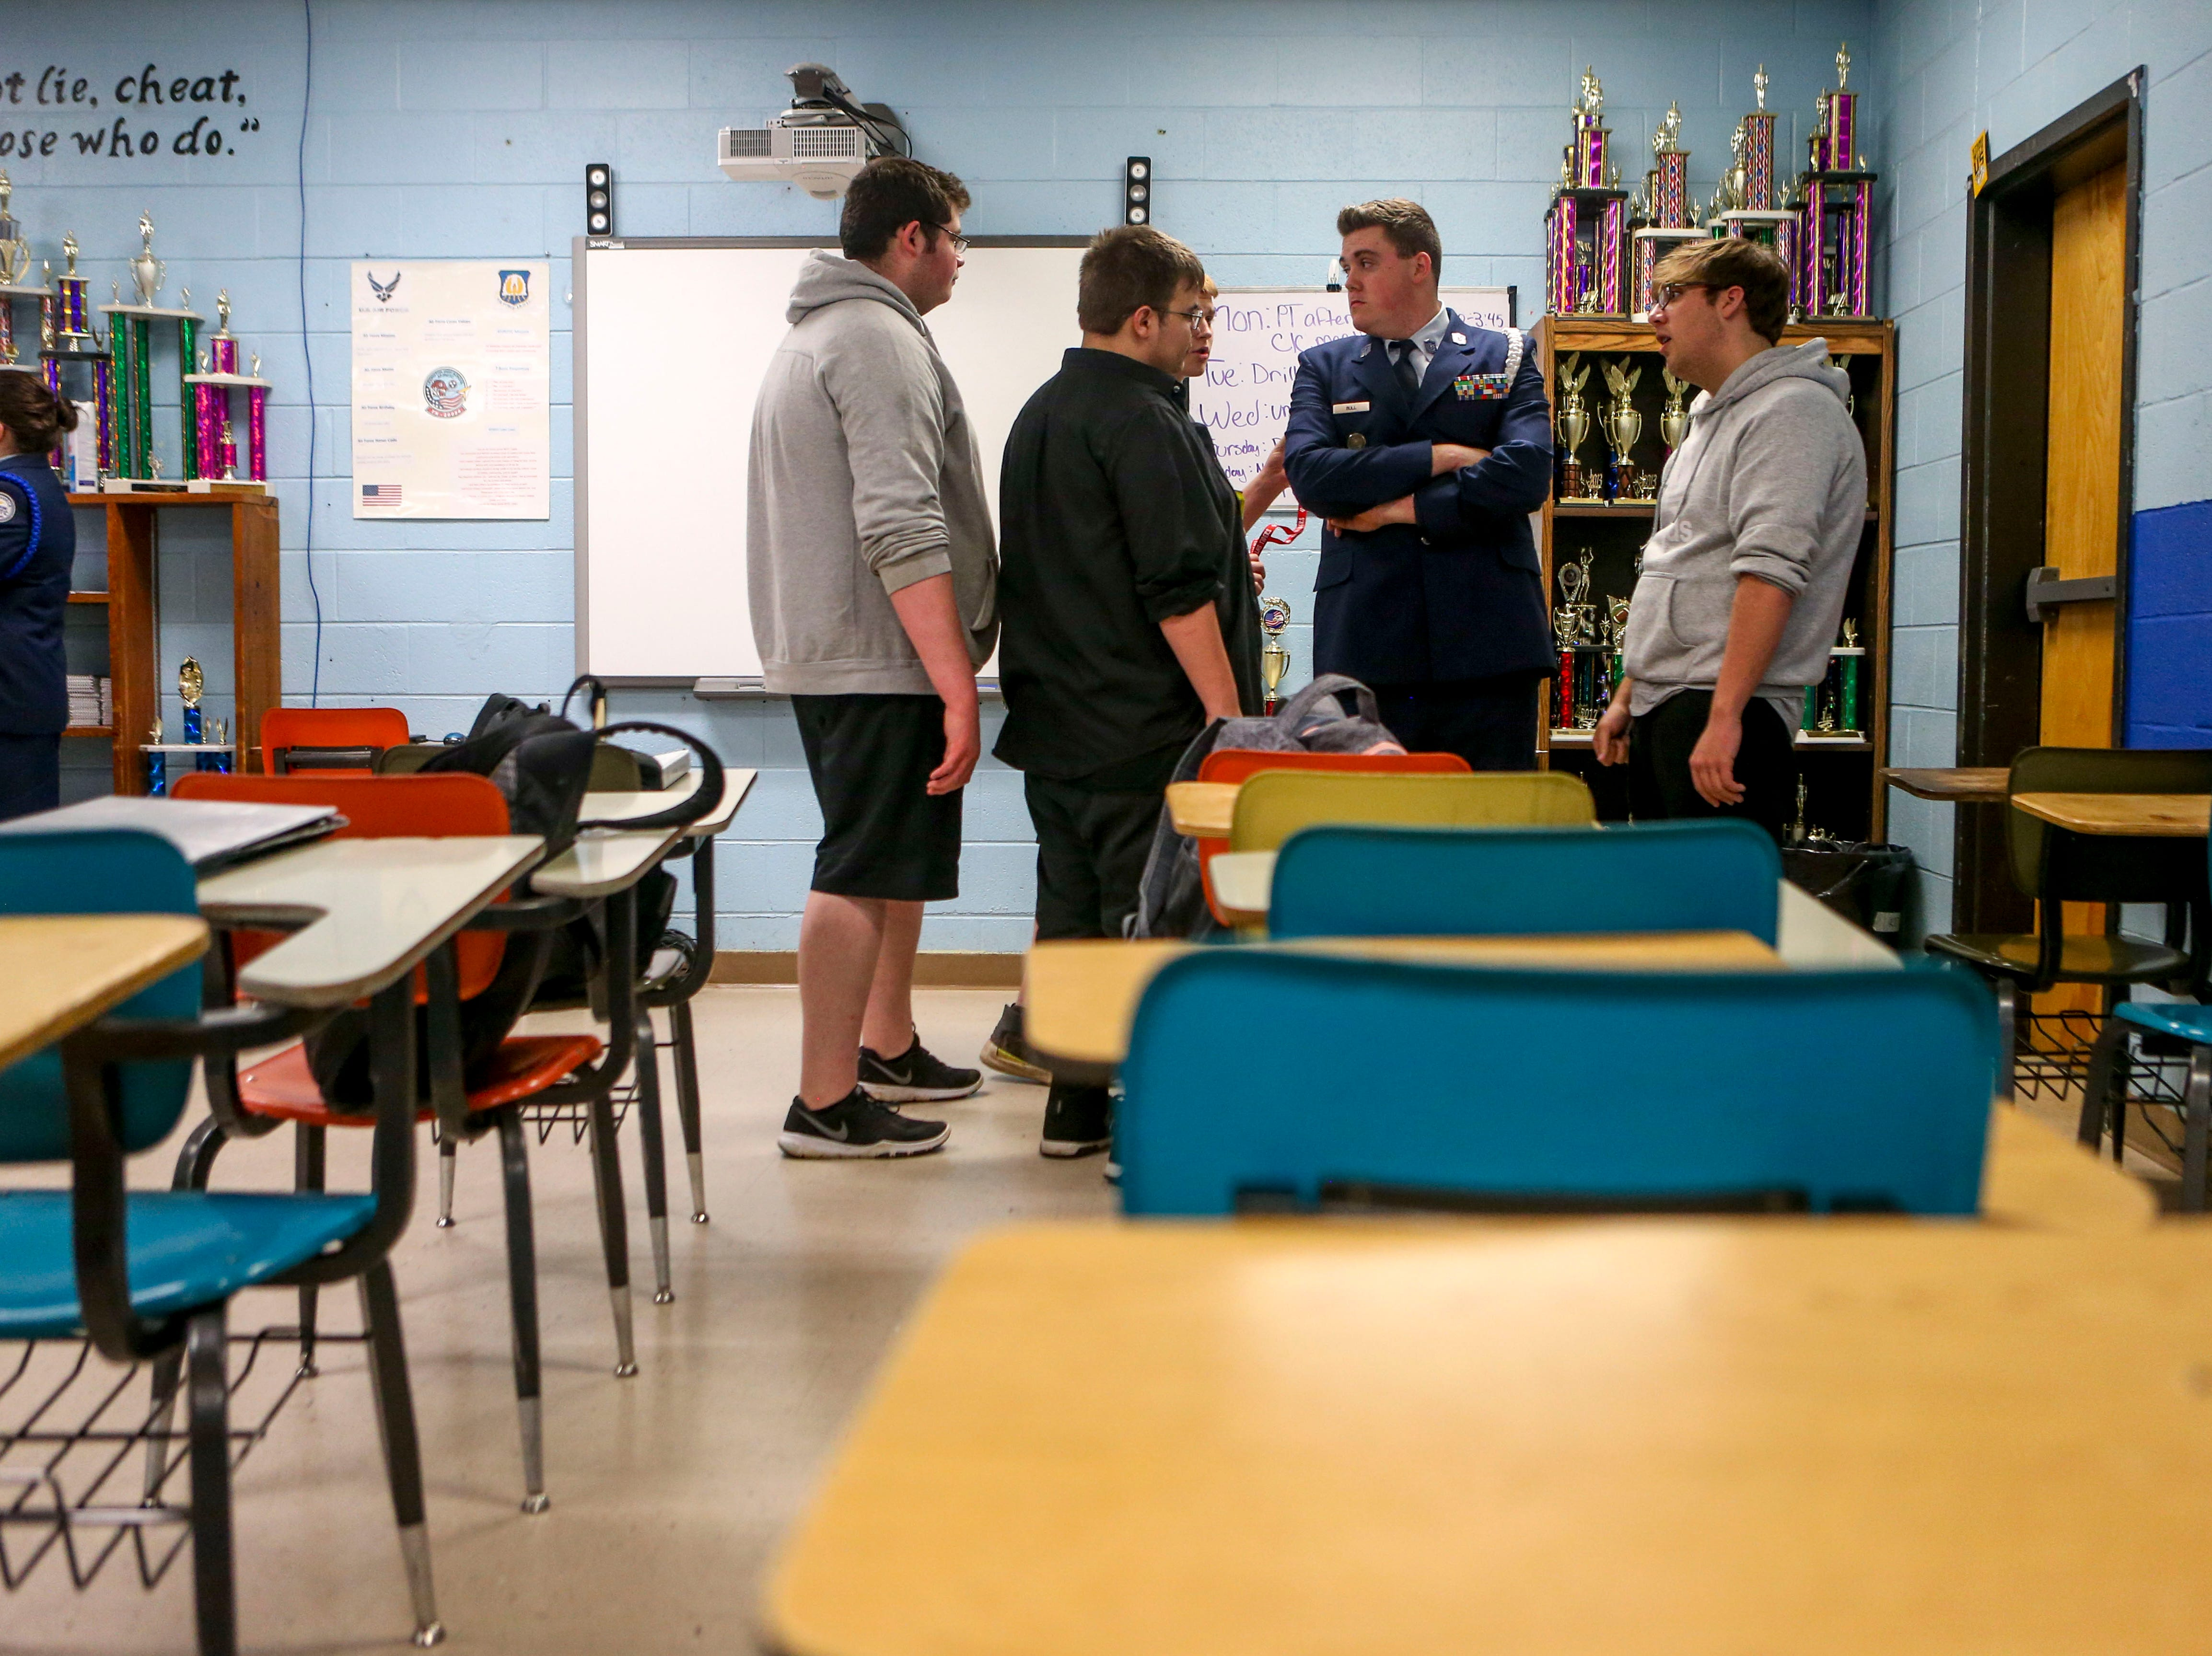 ROTC students stand around and chat during ROTC class at Lexington High School in Lexington, Tenn., on Wednesday, Feb. 6, 2019.